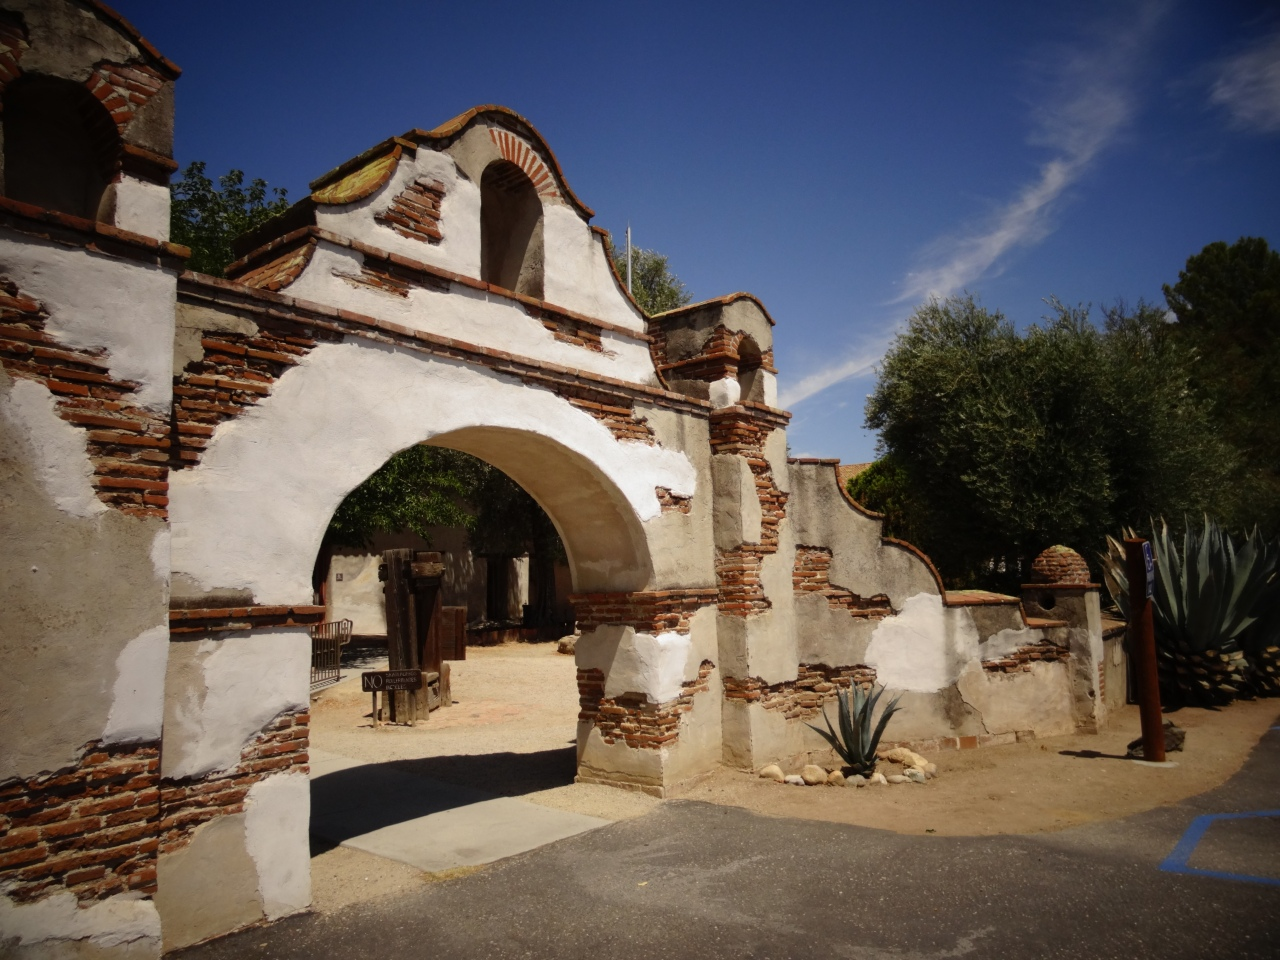 California Has a Historic Trail of Missions (Built 1769-1833)